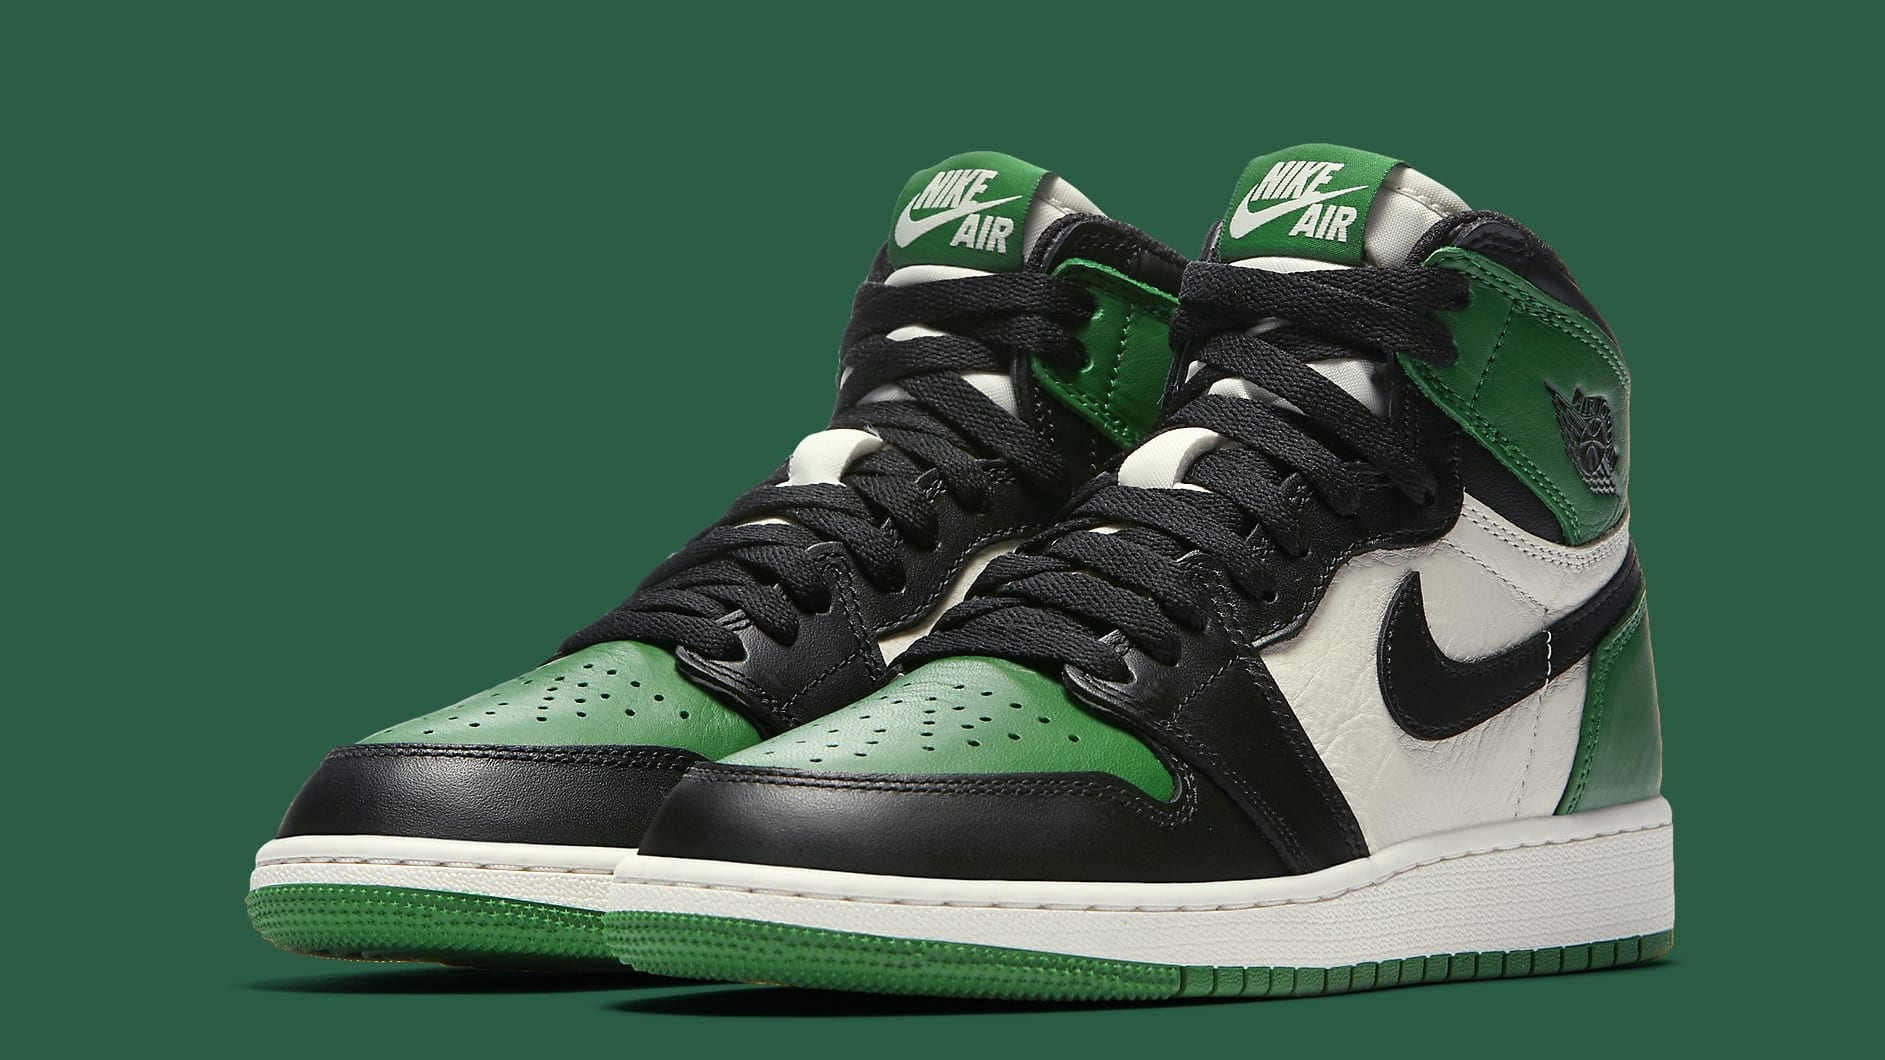 air-jordan-1-gs-pine-green-575441-302-pair